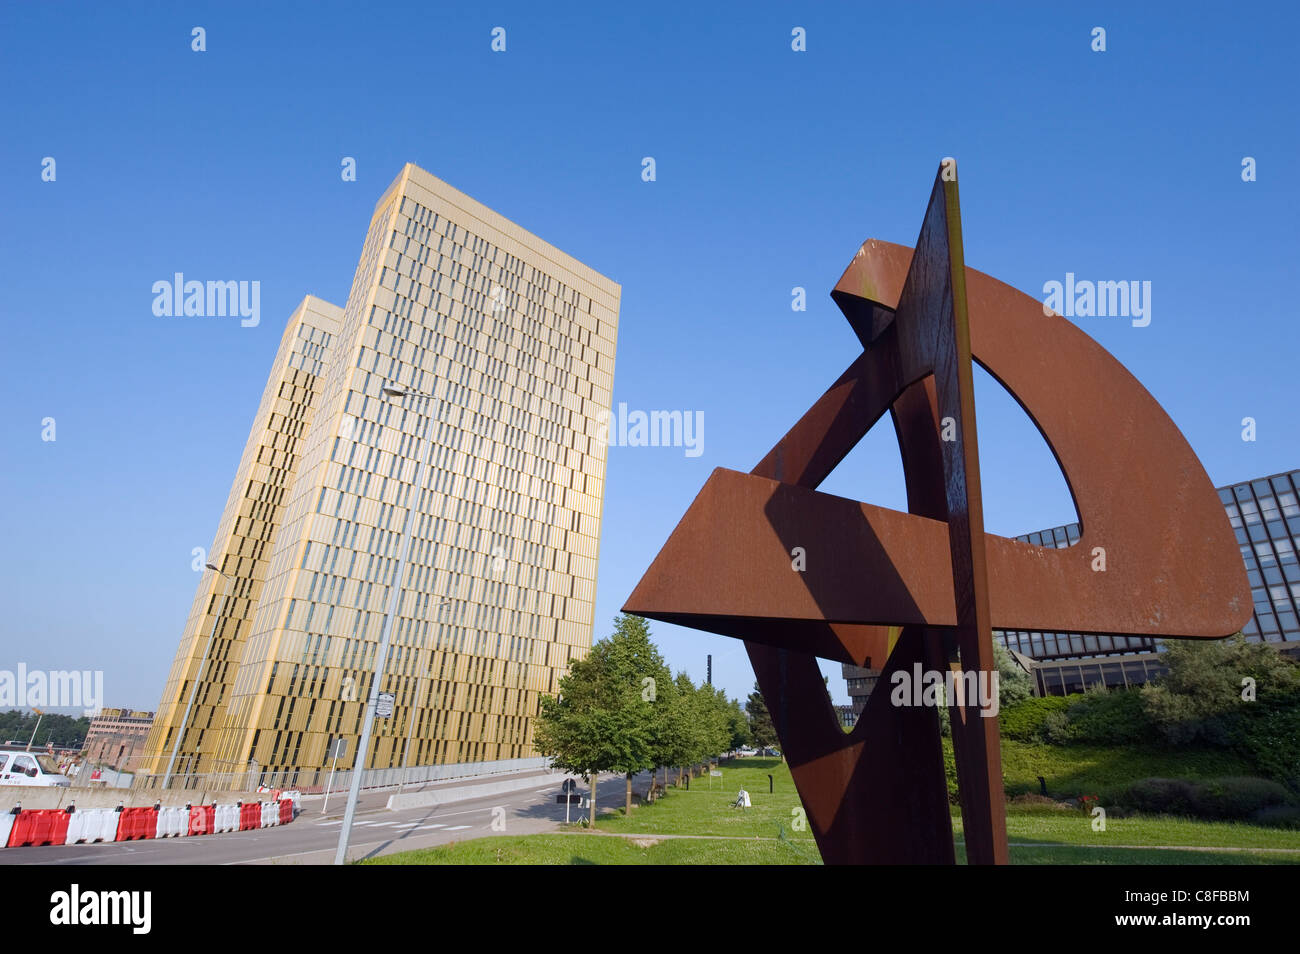 Modern art, Court of Justice of the EC, EU district on Kirchberg Plateau, Luxembourg City, Grand Duchy of Luxembourg - Stock Image